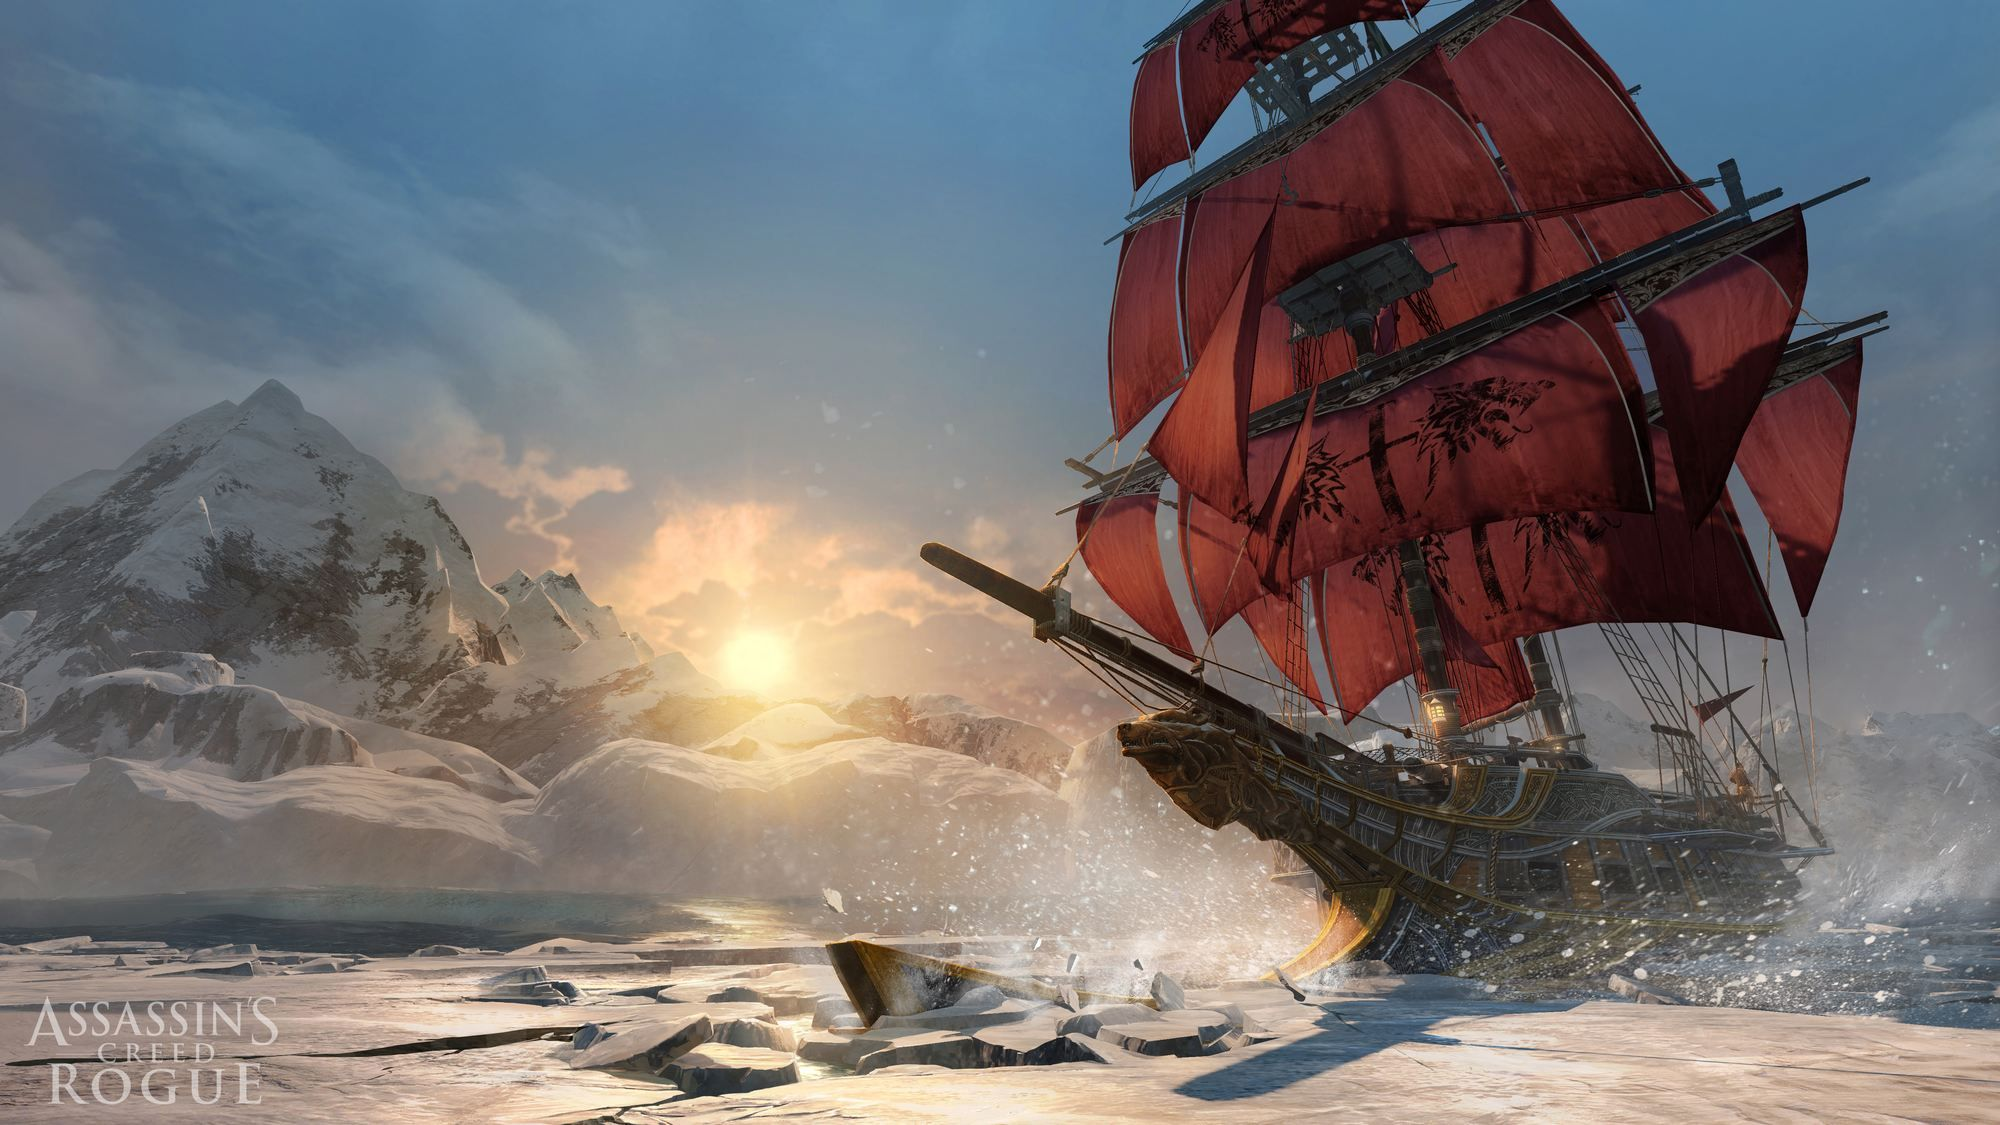 Assassin's Creed Rogue Remastered (PS4) - 4